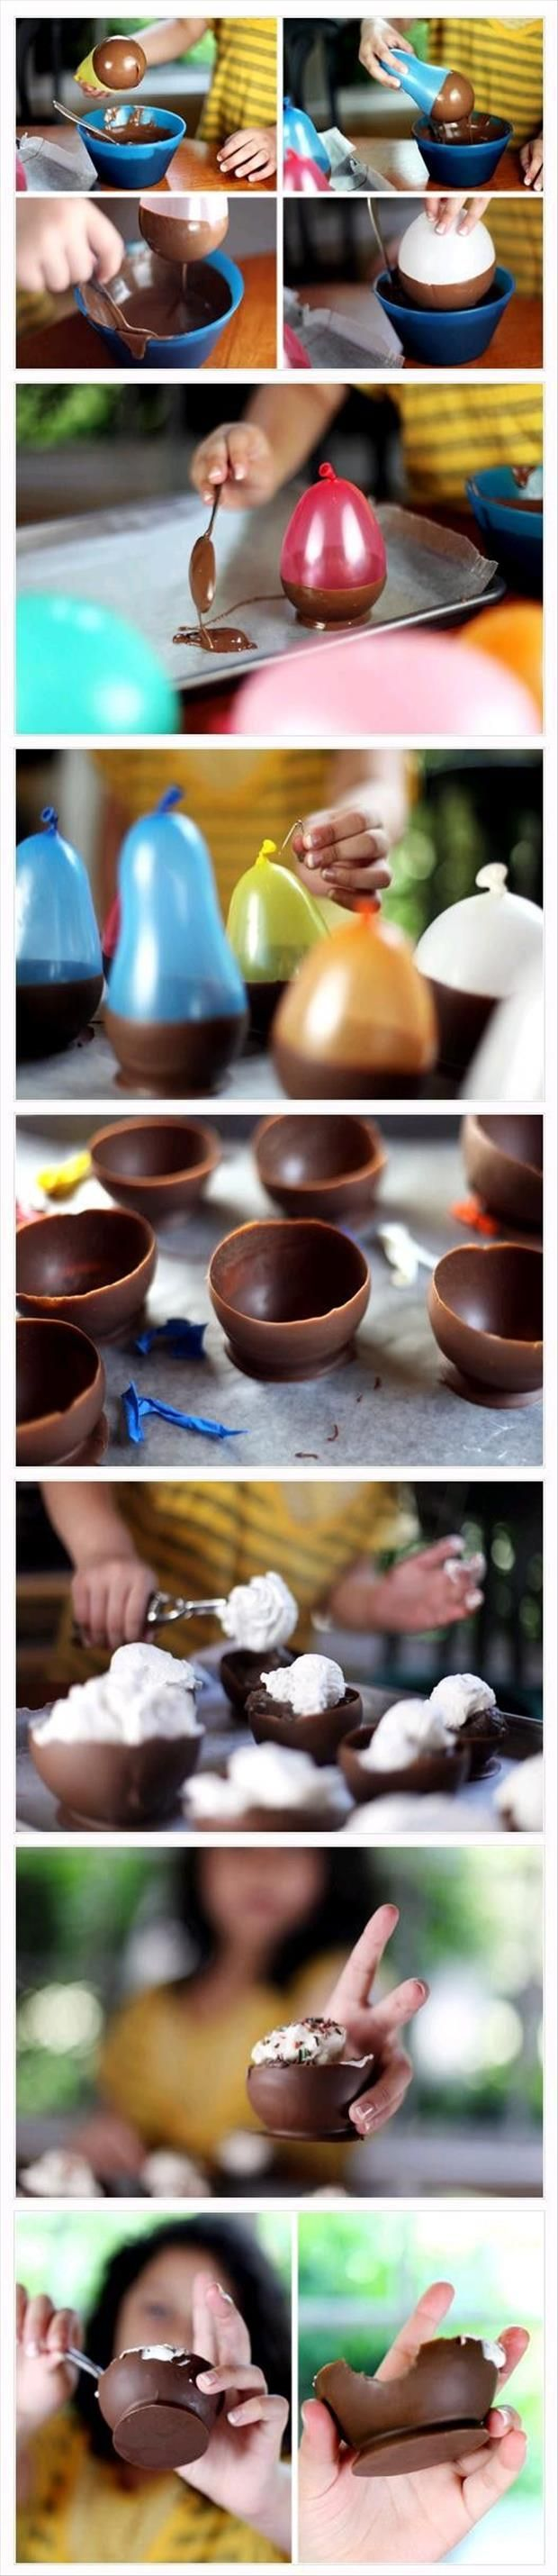 Easy & Delicious Chocolate Bowls ....do these in white chocolate and tint to party color add sprinkles etc.